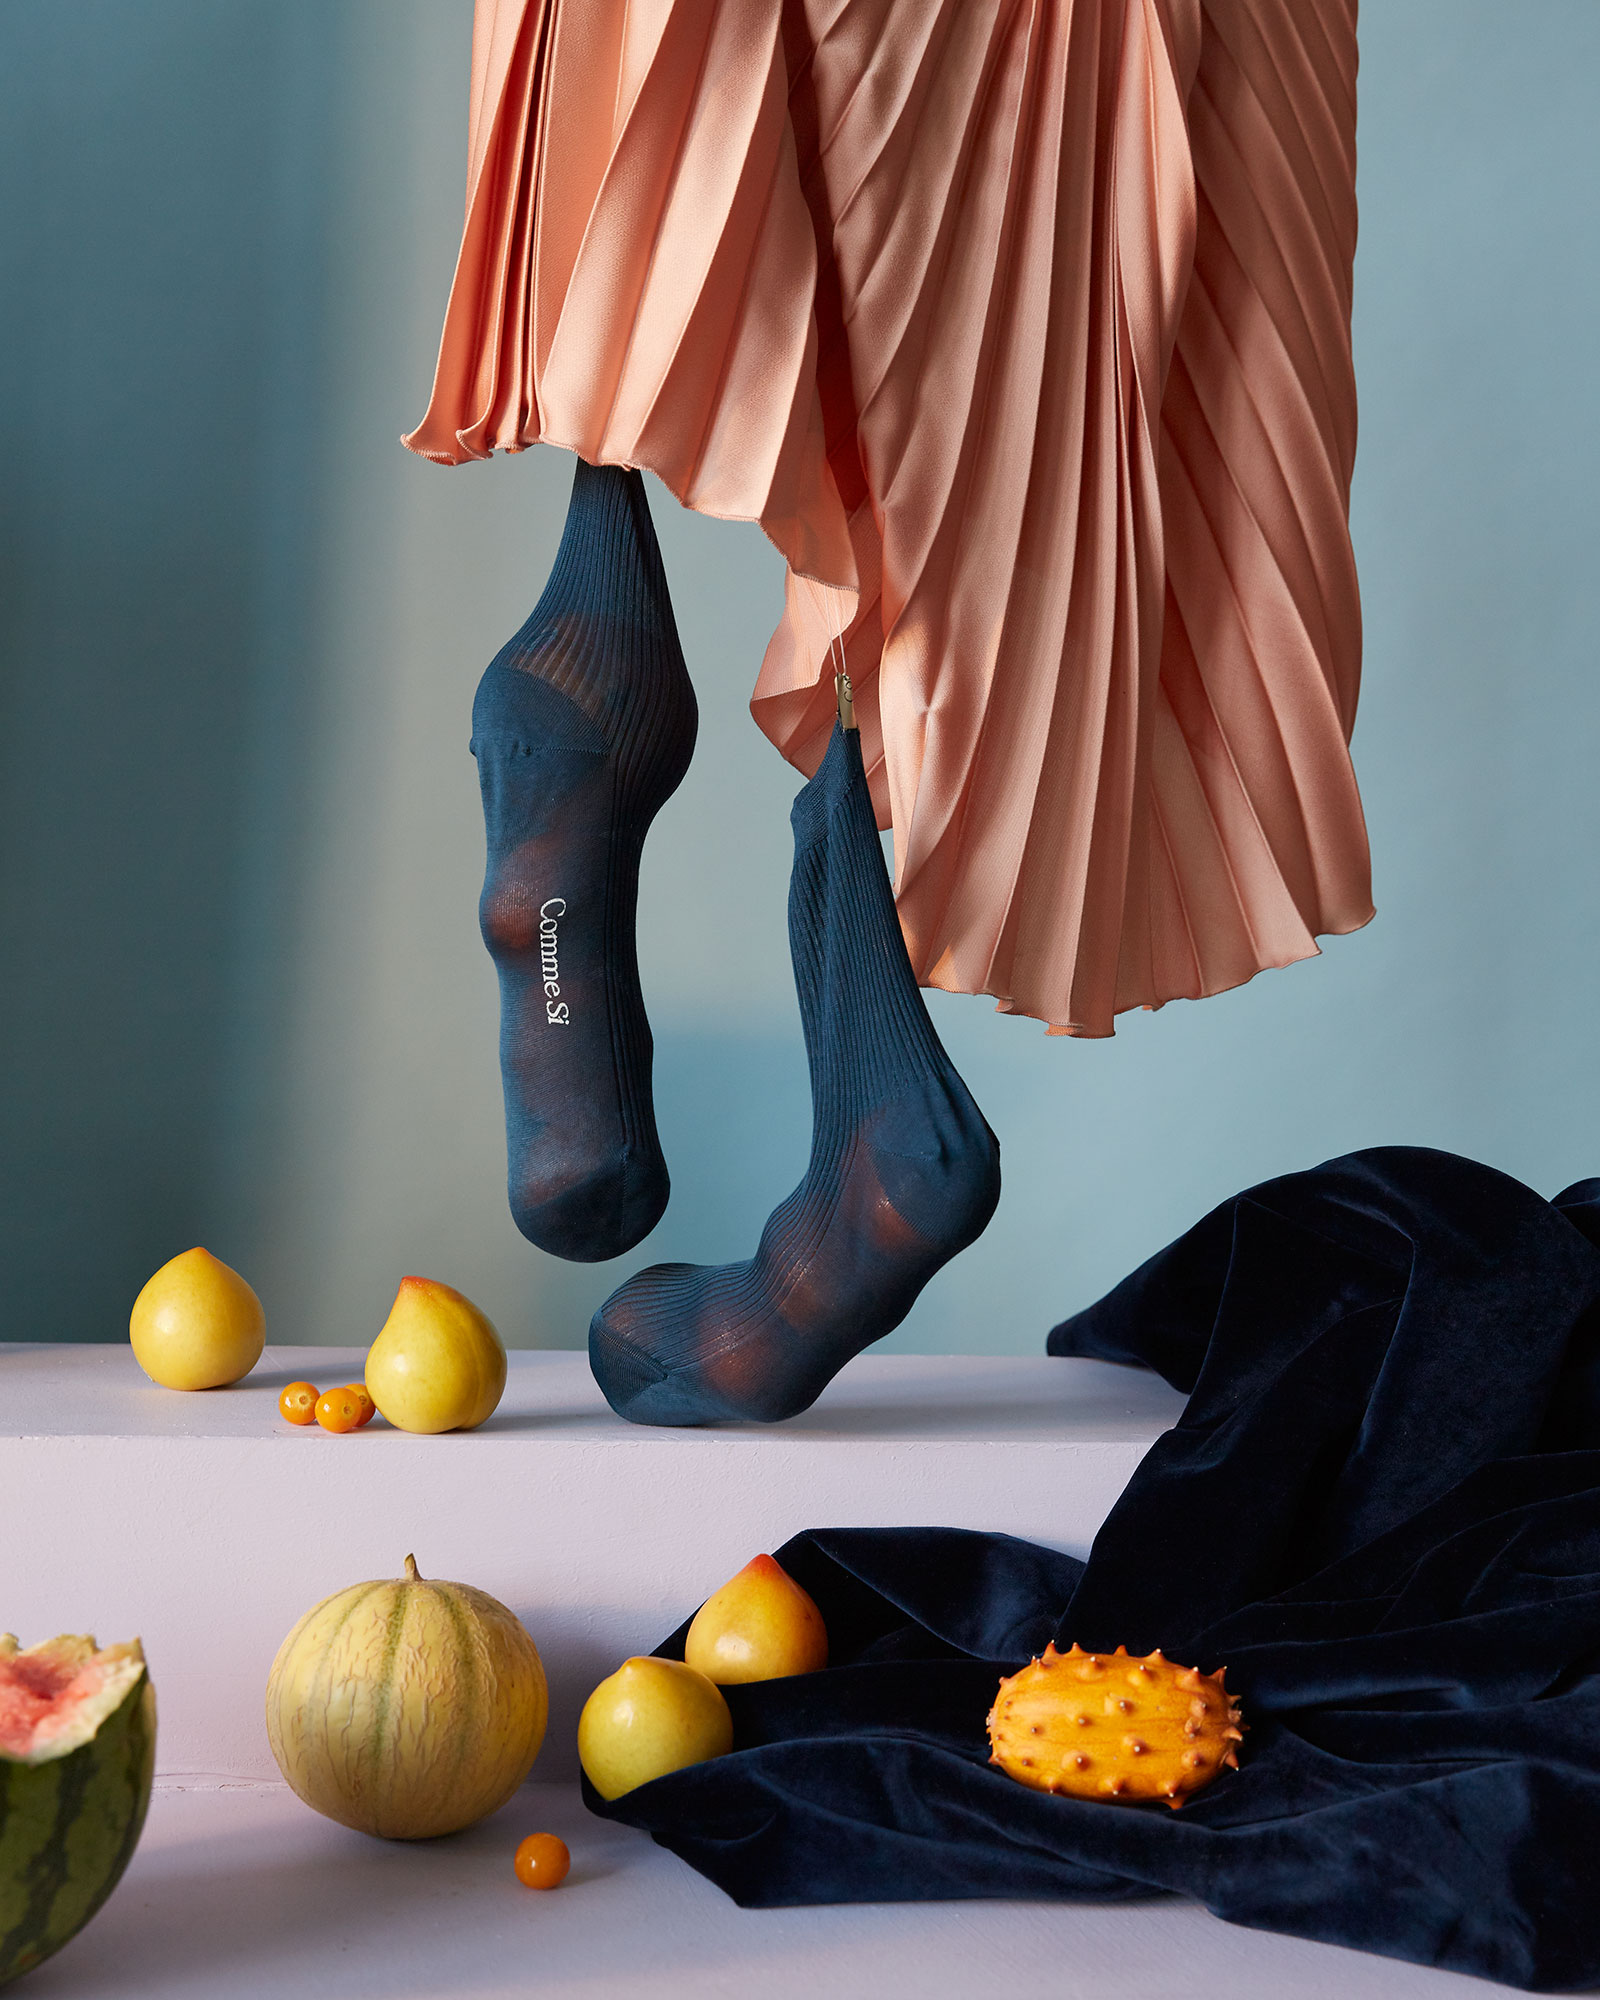 A socks still life story via Doan Ly